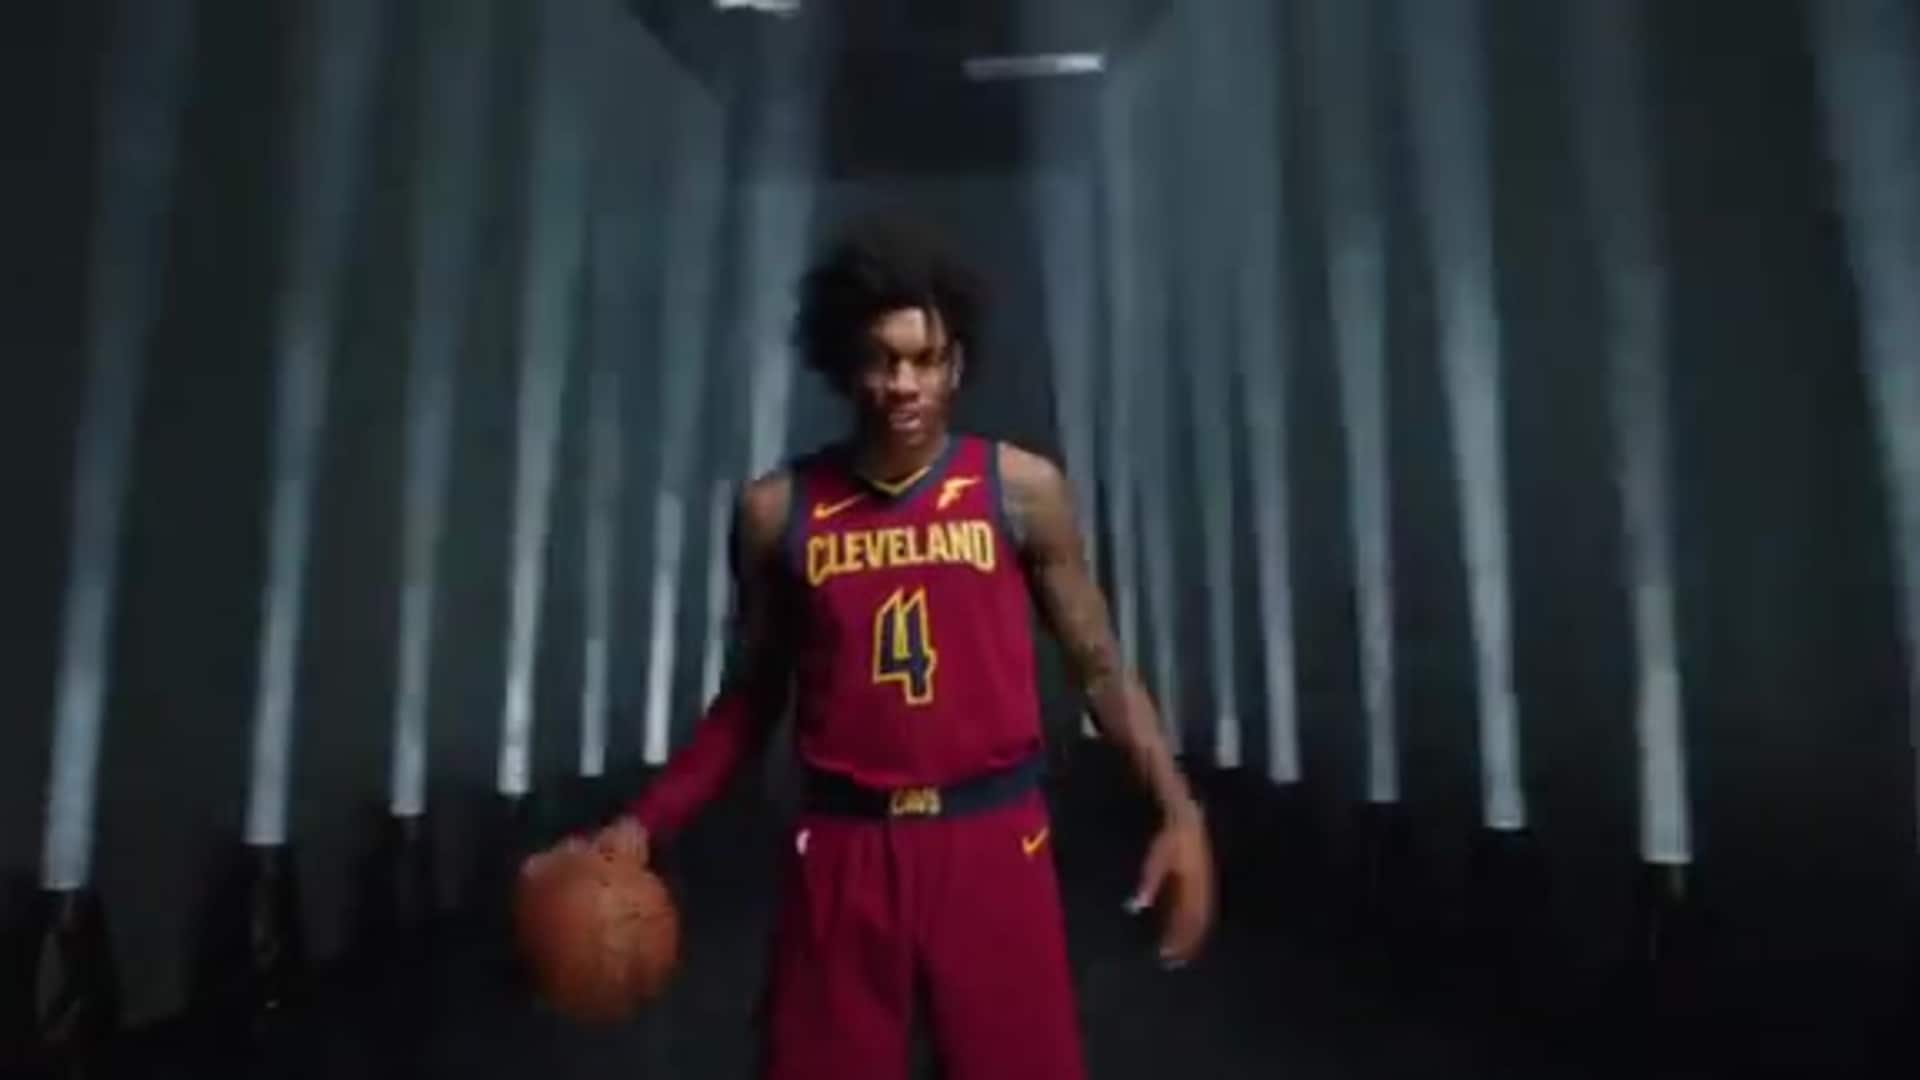 Cleveland Cavaliers 2019-20 Intro